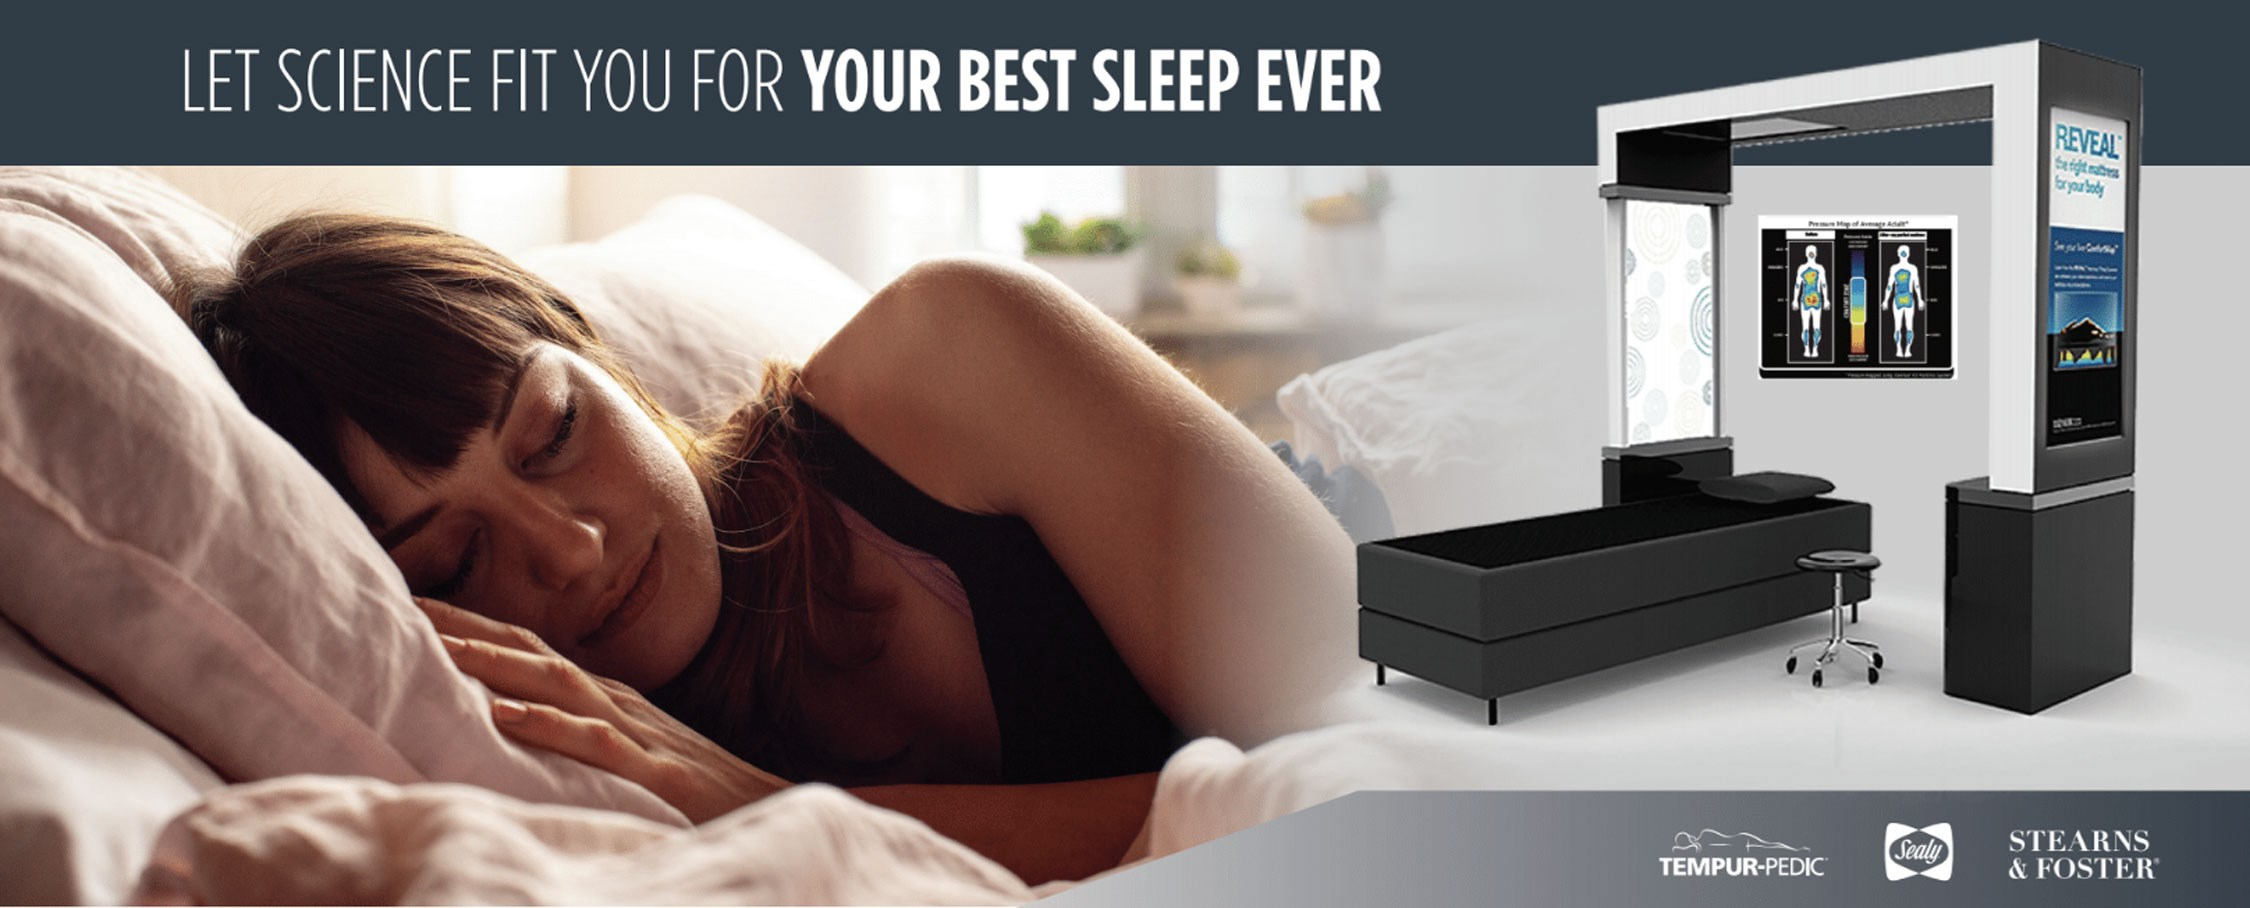 Let Science fit you for your best sleep ever